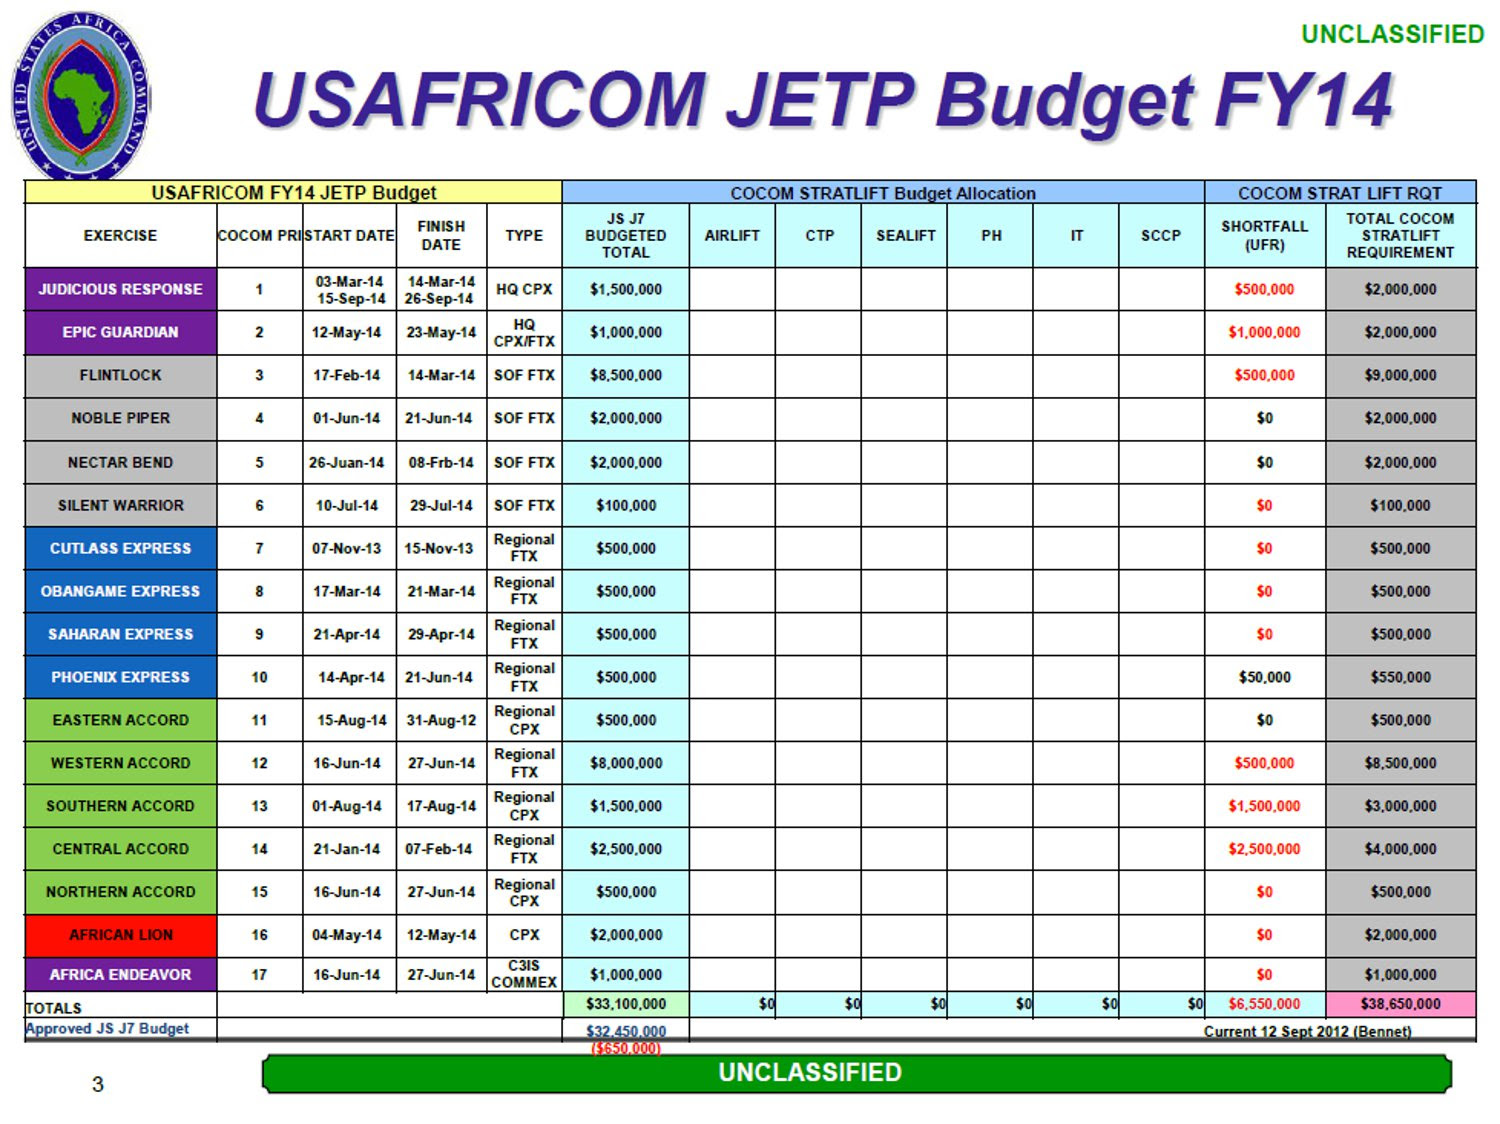 http://codebookafrica.files.wordpress.com/2013/11/120918_africom-jetp-budget-fy14.jpg